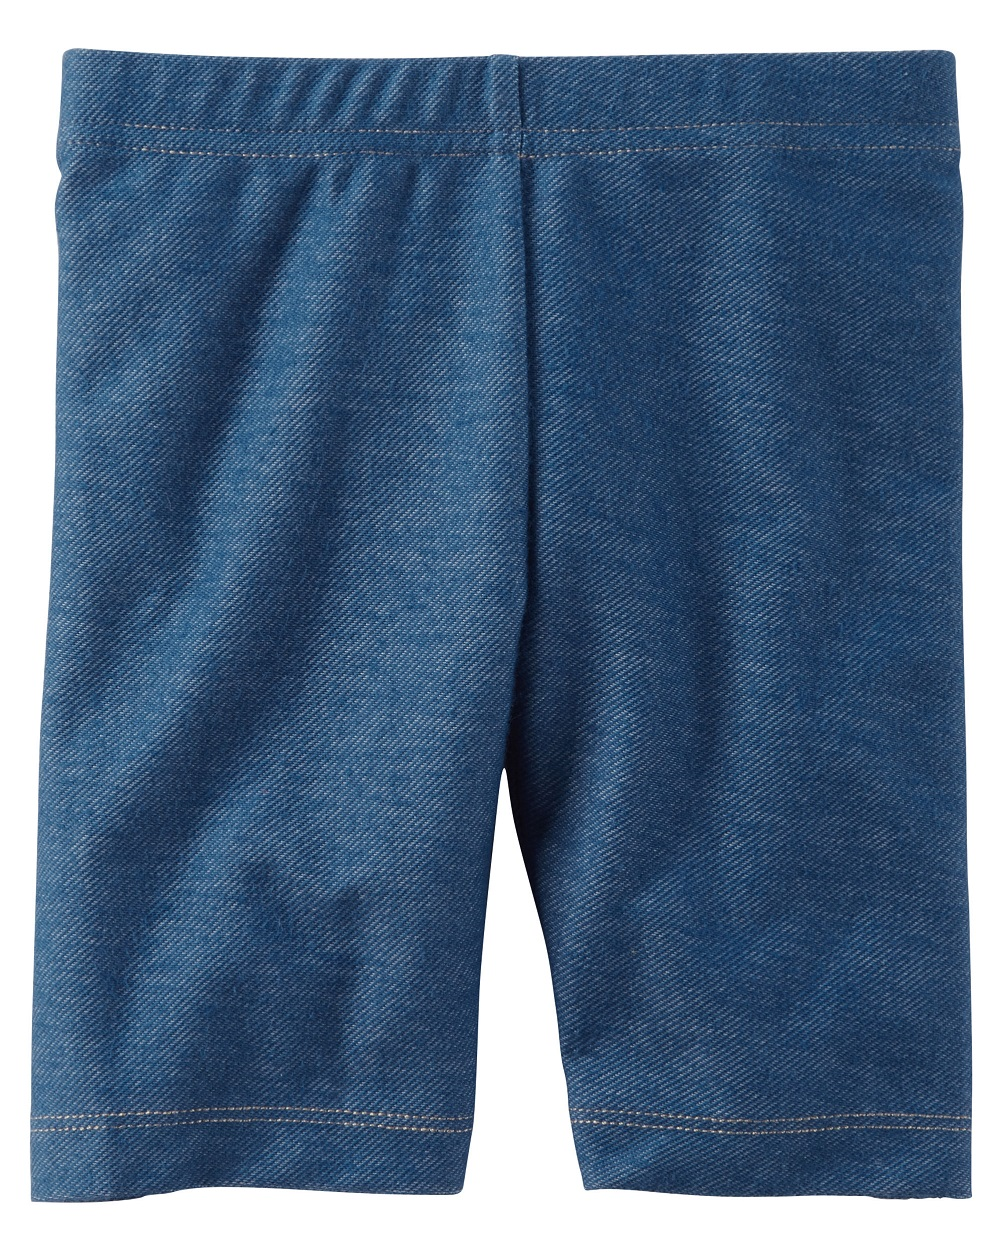 Carter's Baby Girls' Denim Biker Shorts, 3 Months